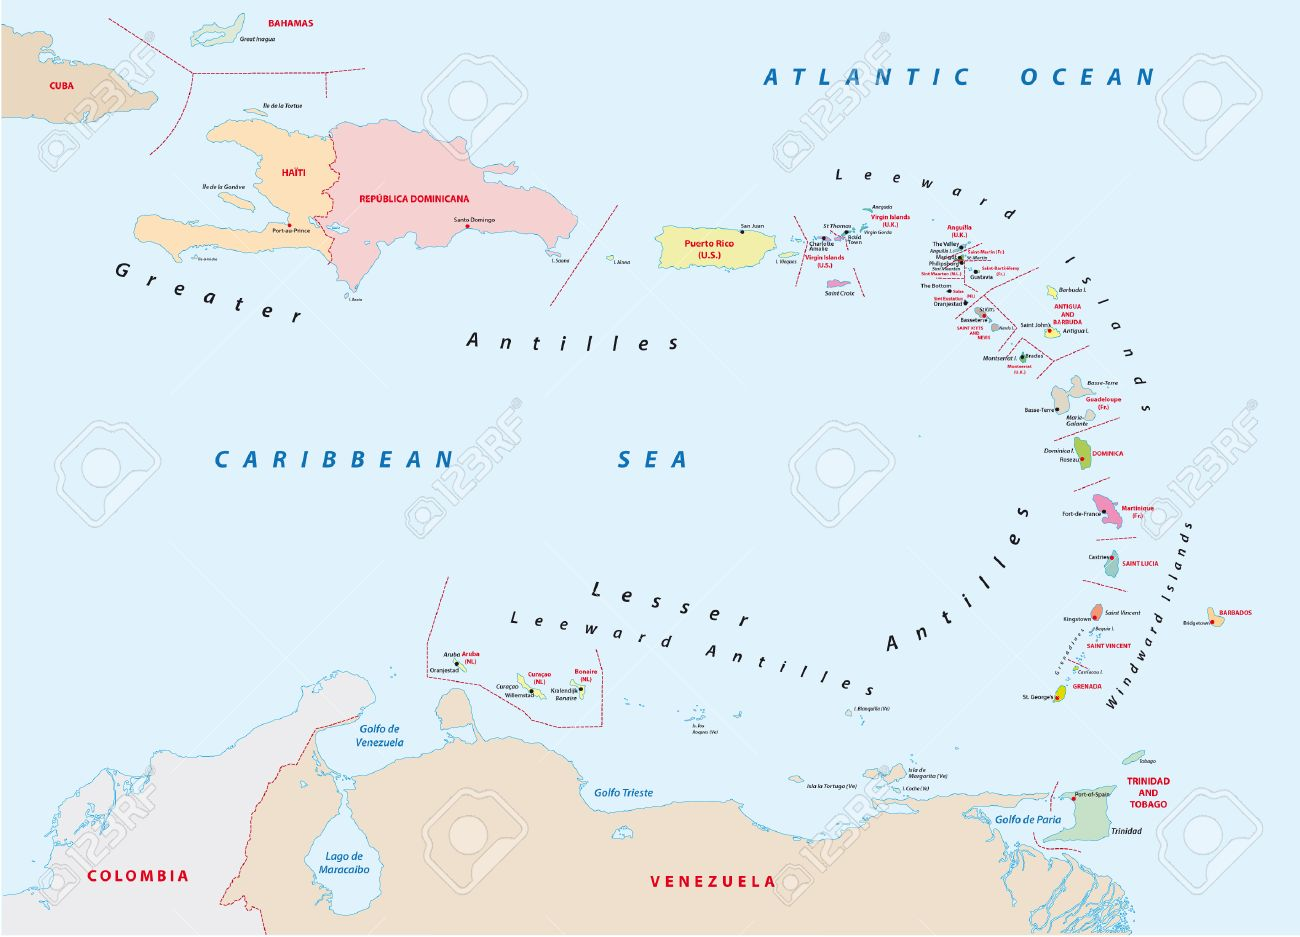 Large And Lesser Antilles Political Map Stock Vector - Image: 39076600